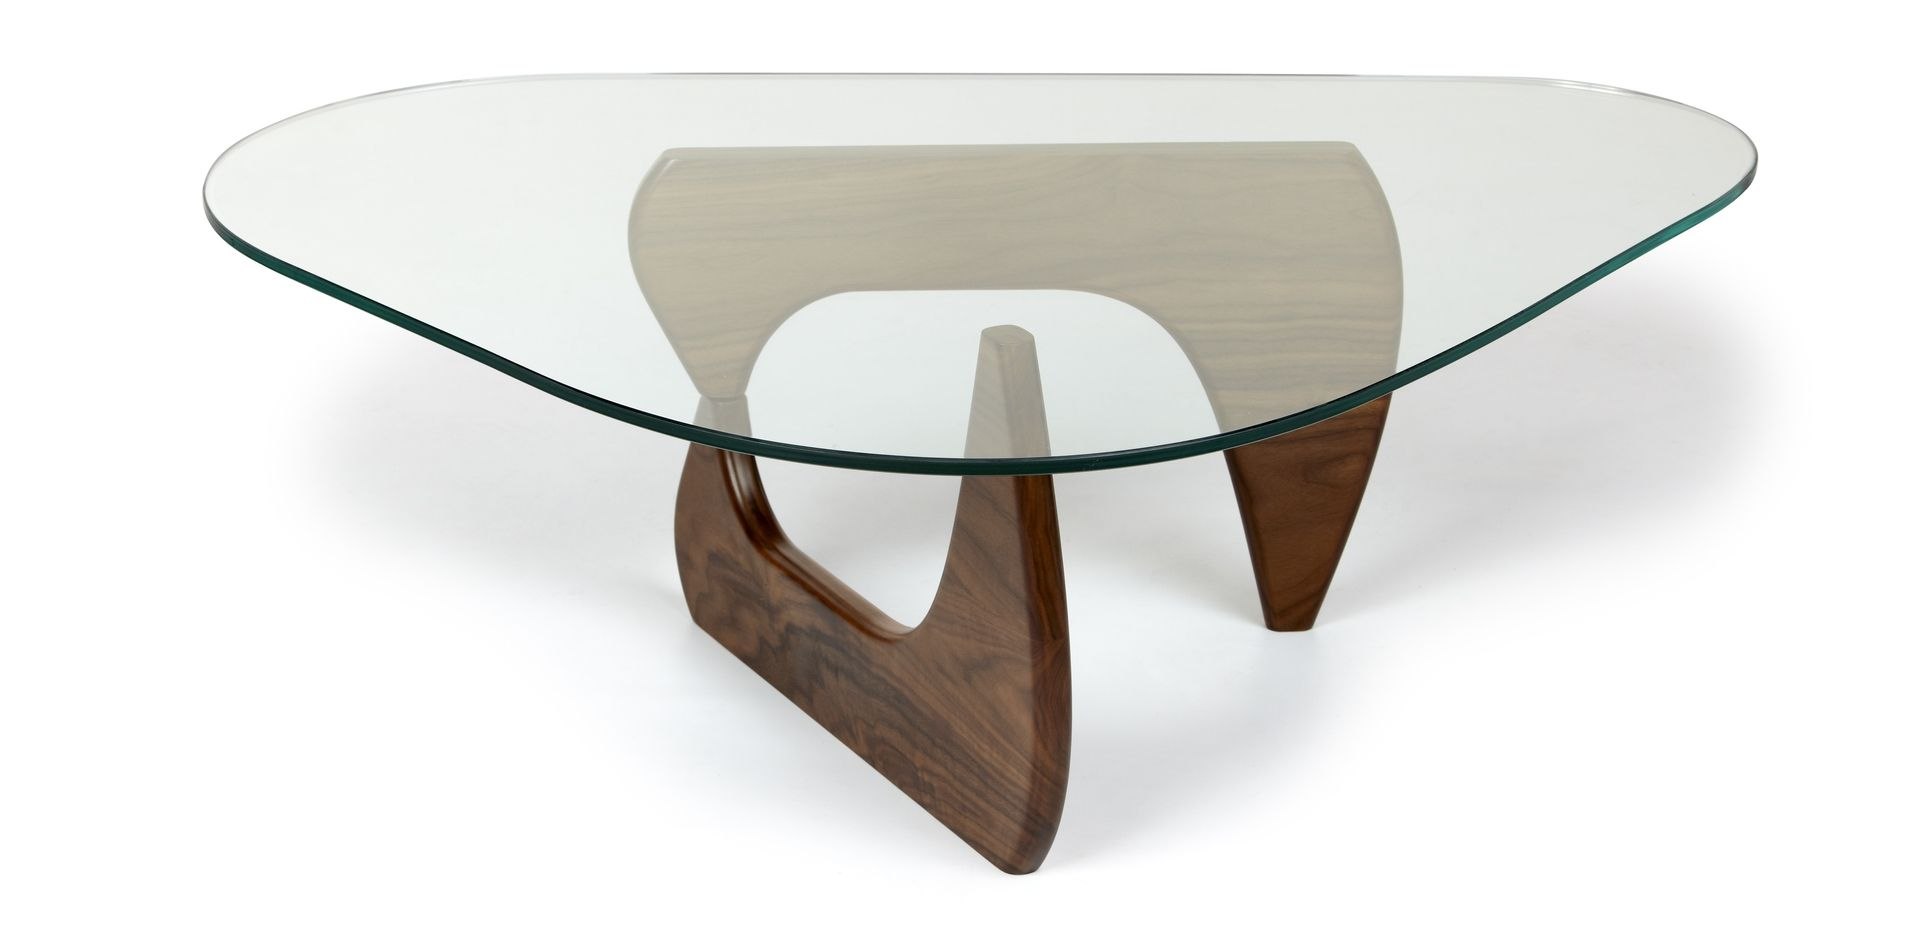 Hand crafted mid century modern coffee table by chicone for Mid century modern coffee table